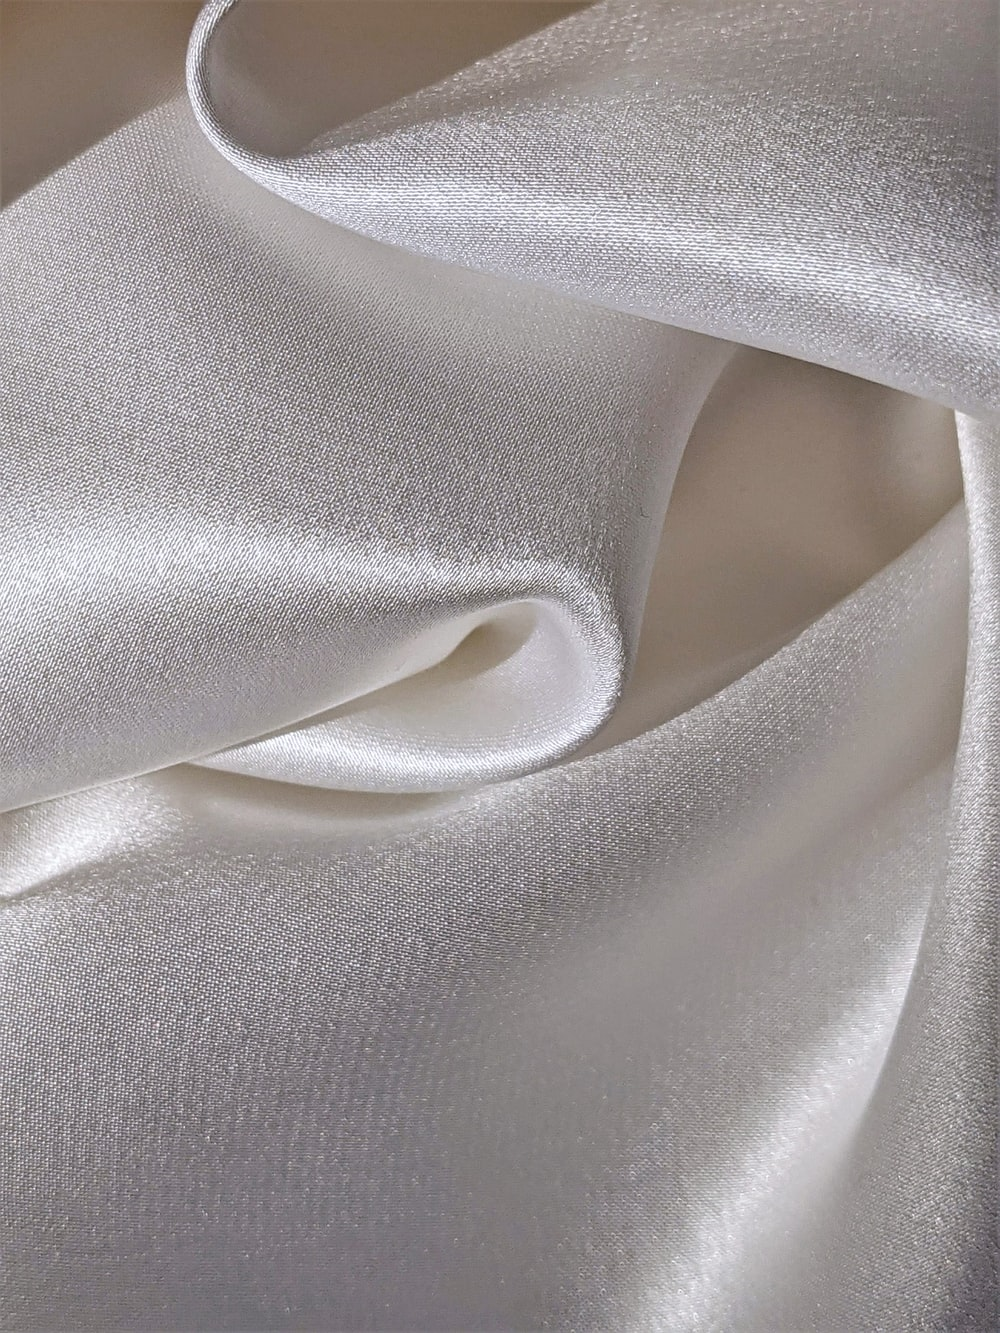 gray textile on brown wooden table